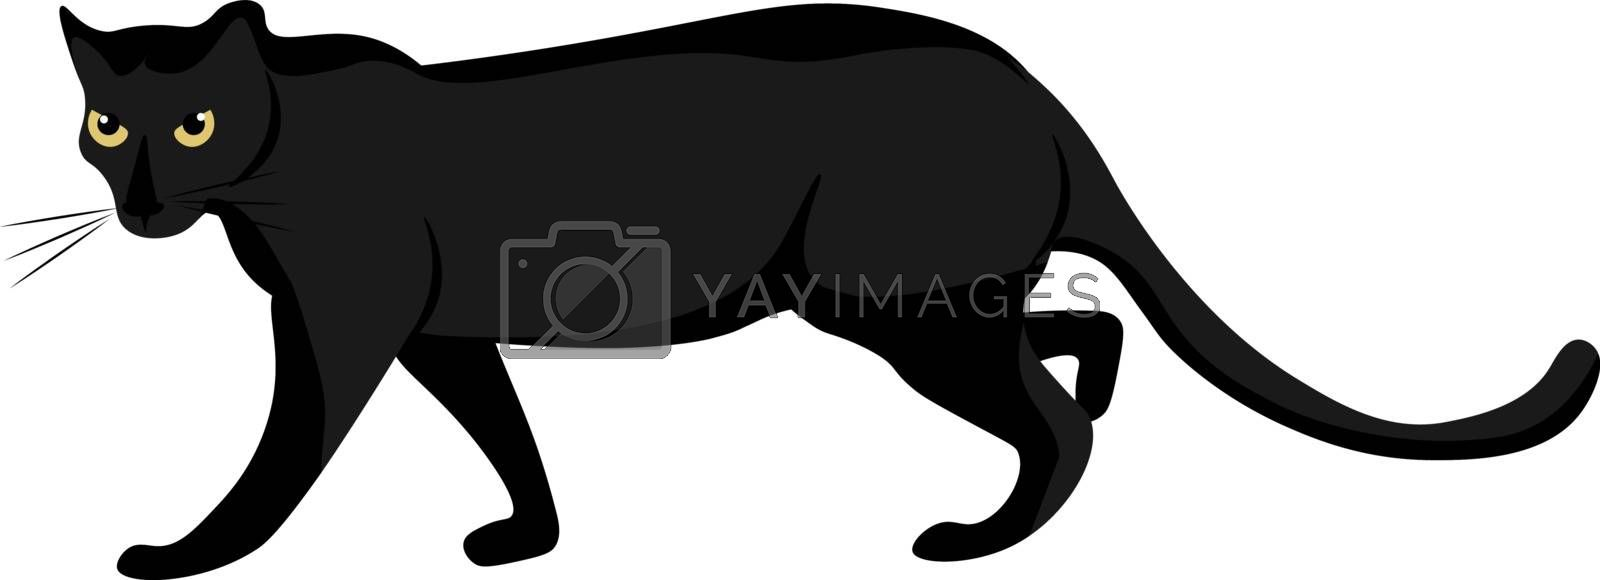 Royalty free image of Cartoon panther set on isolated white background viewed from the by Morphart